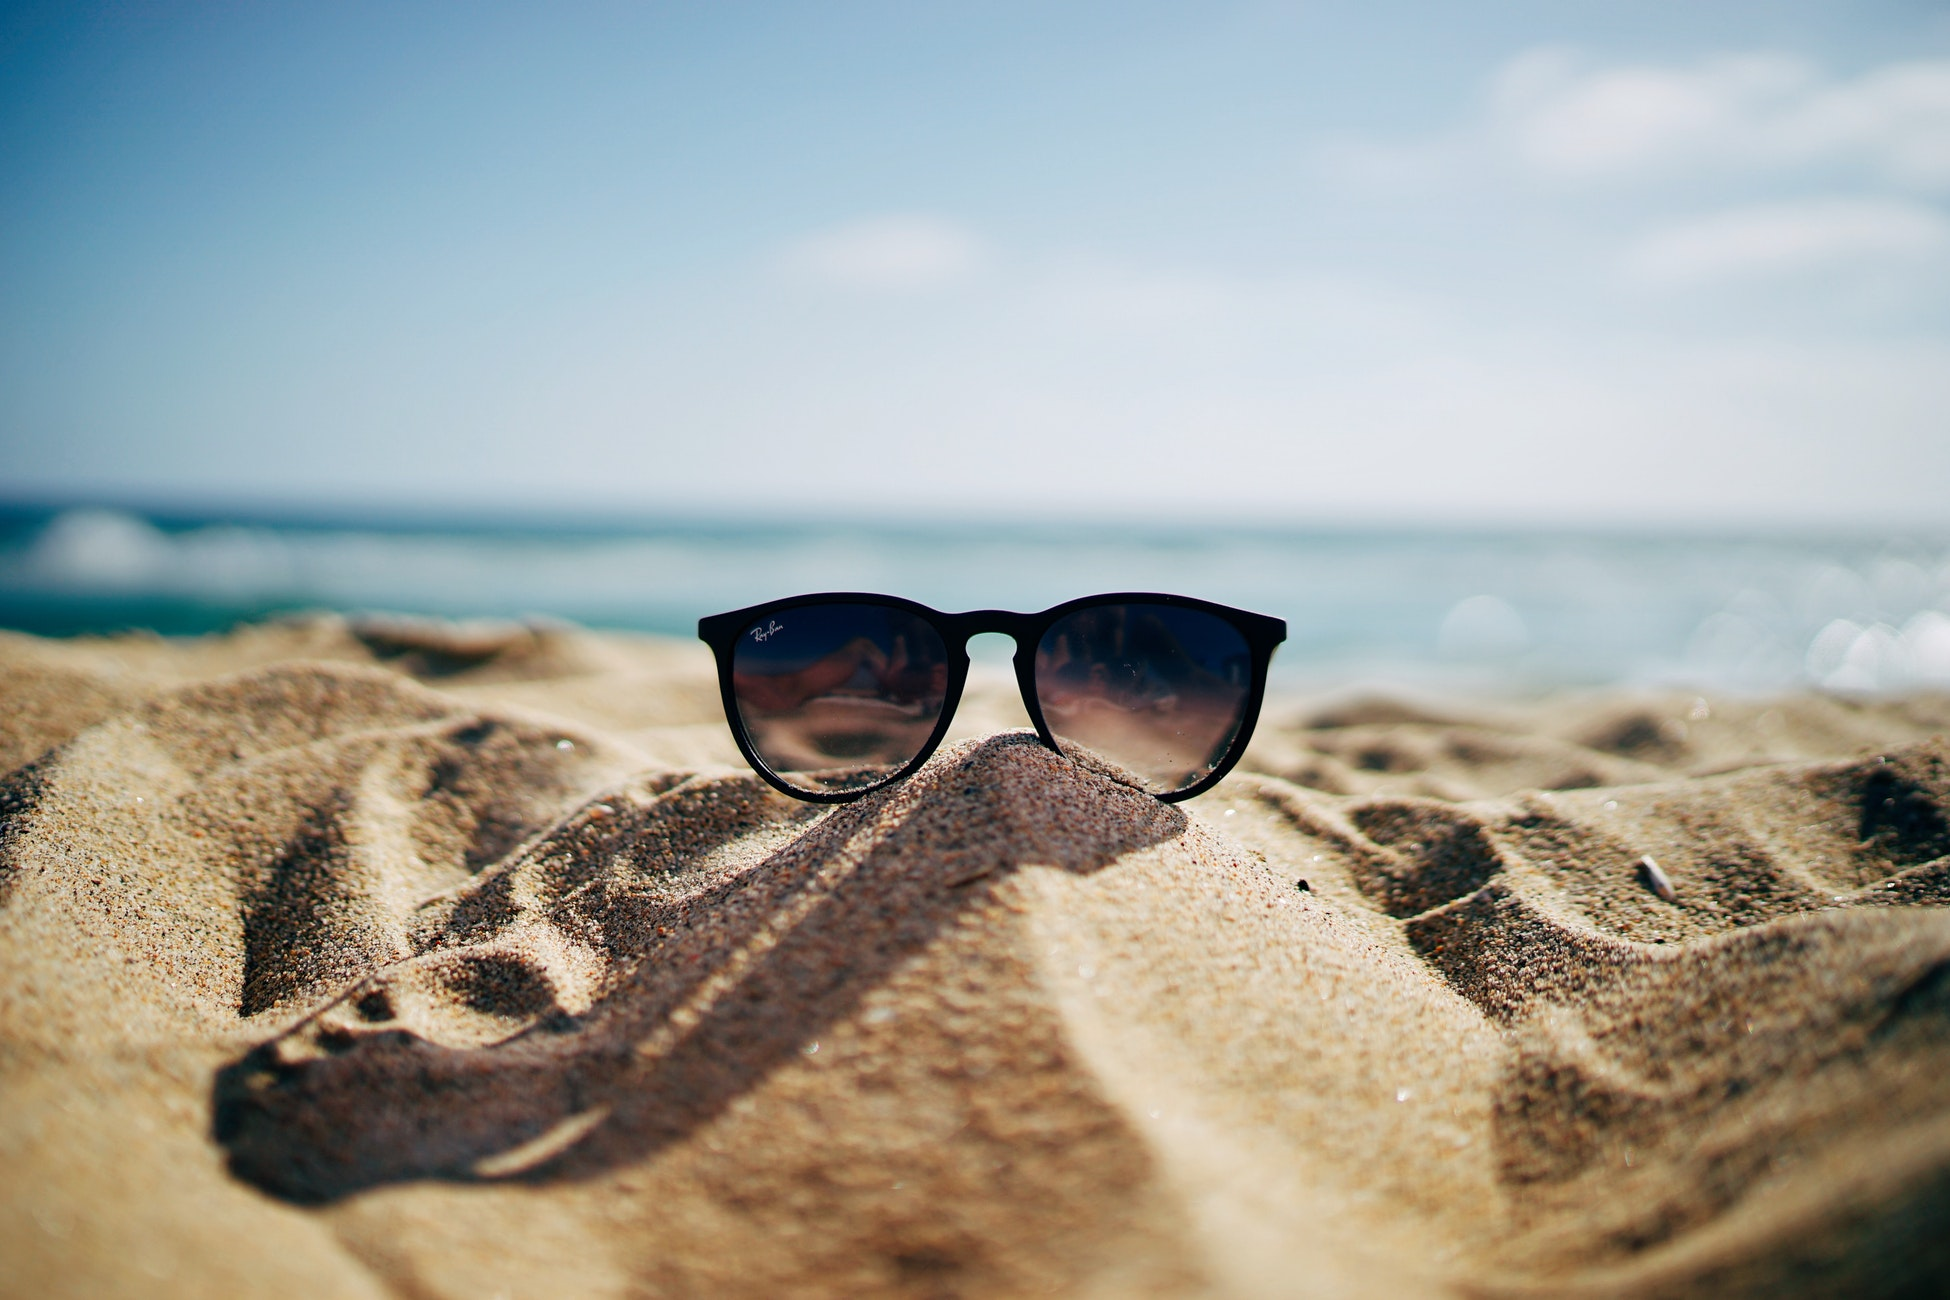 image: sunglasses sitting on sand at beach